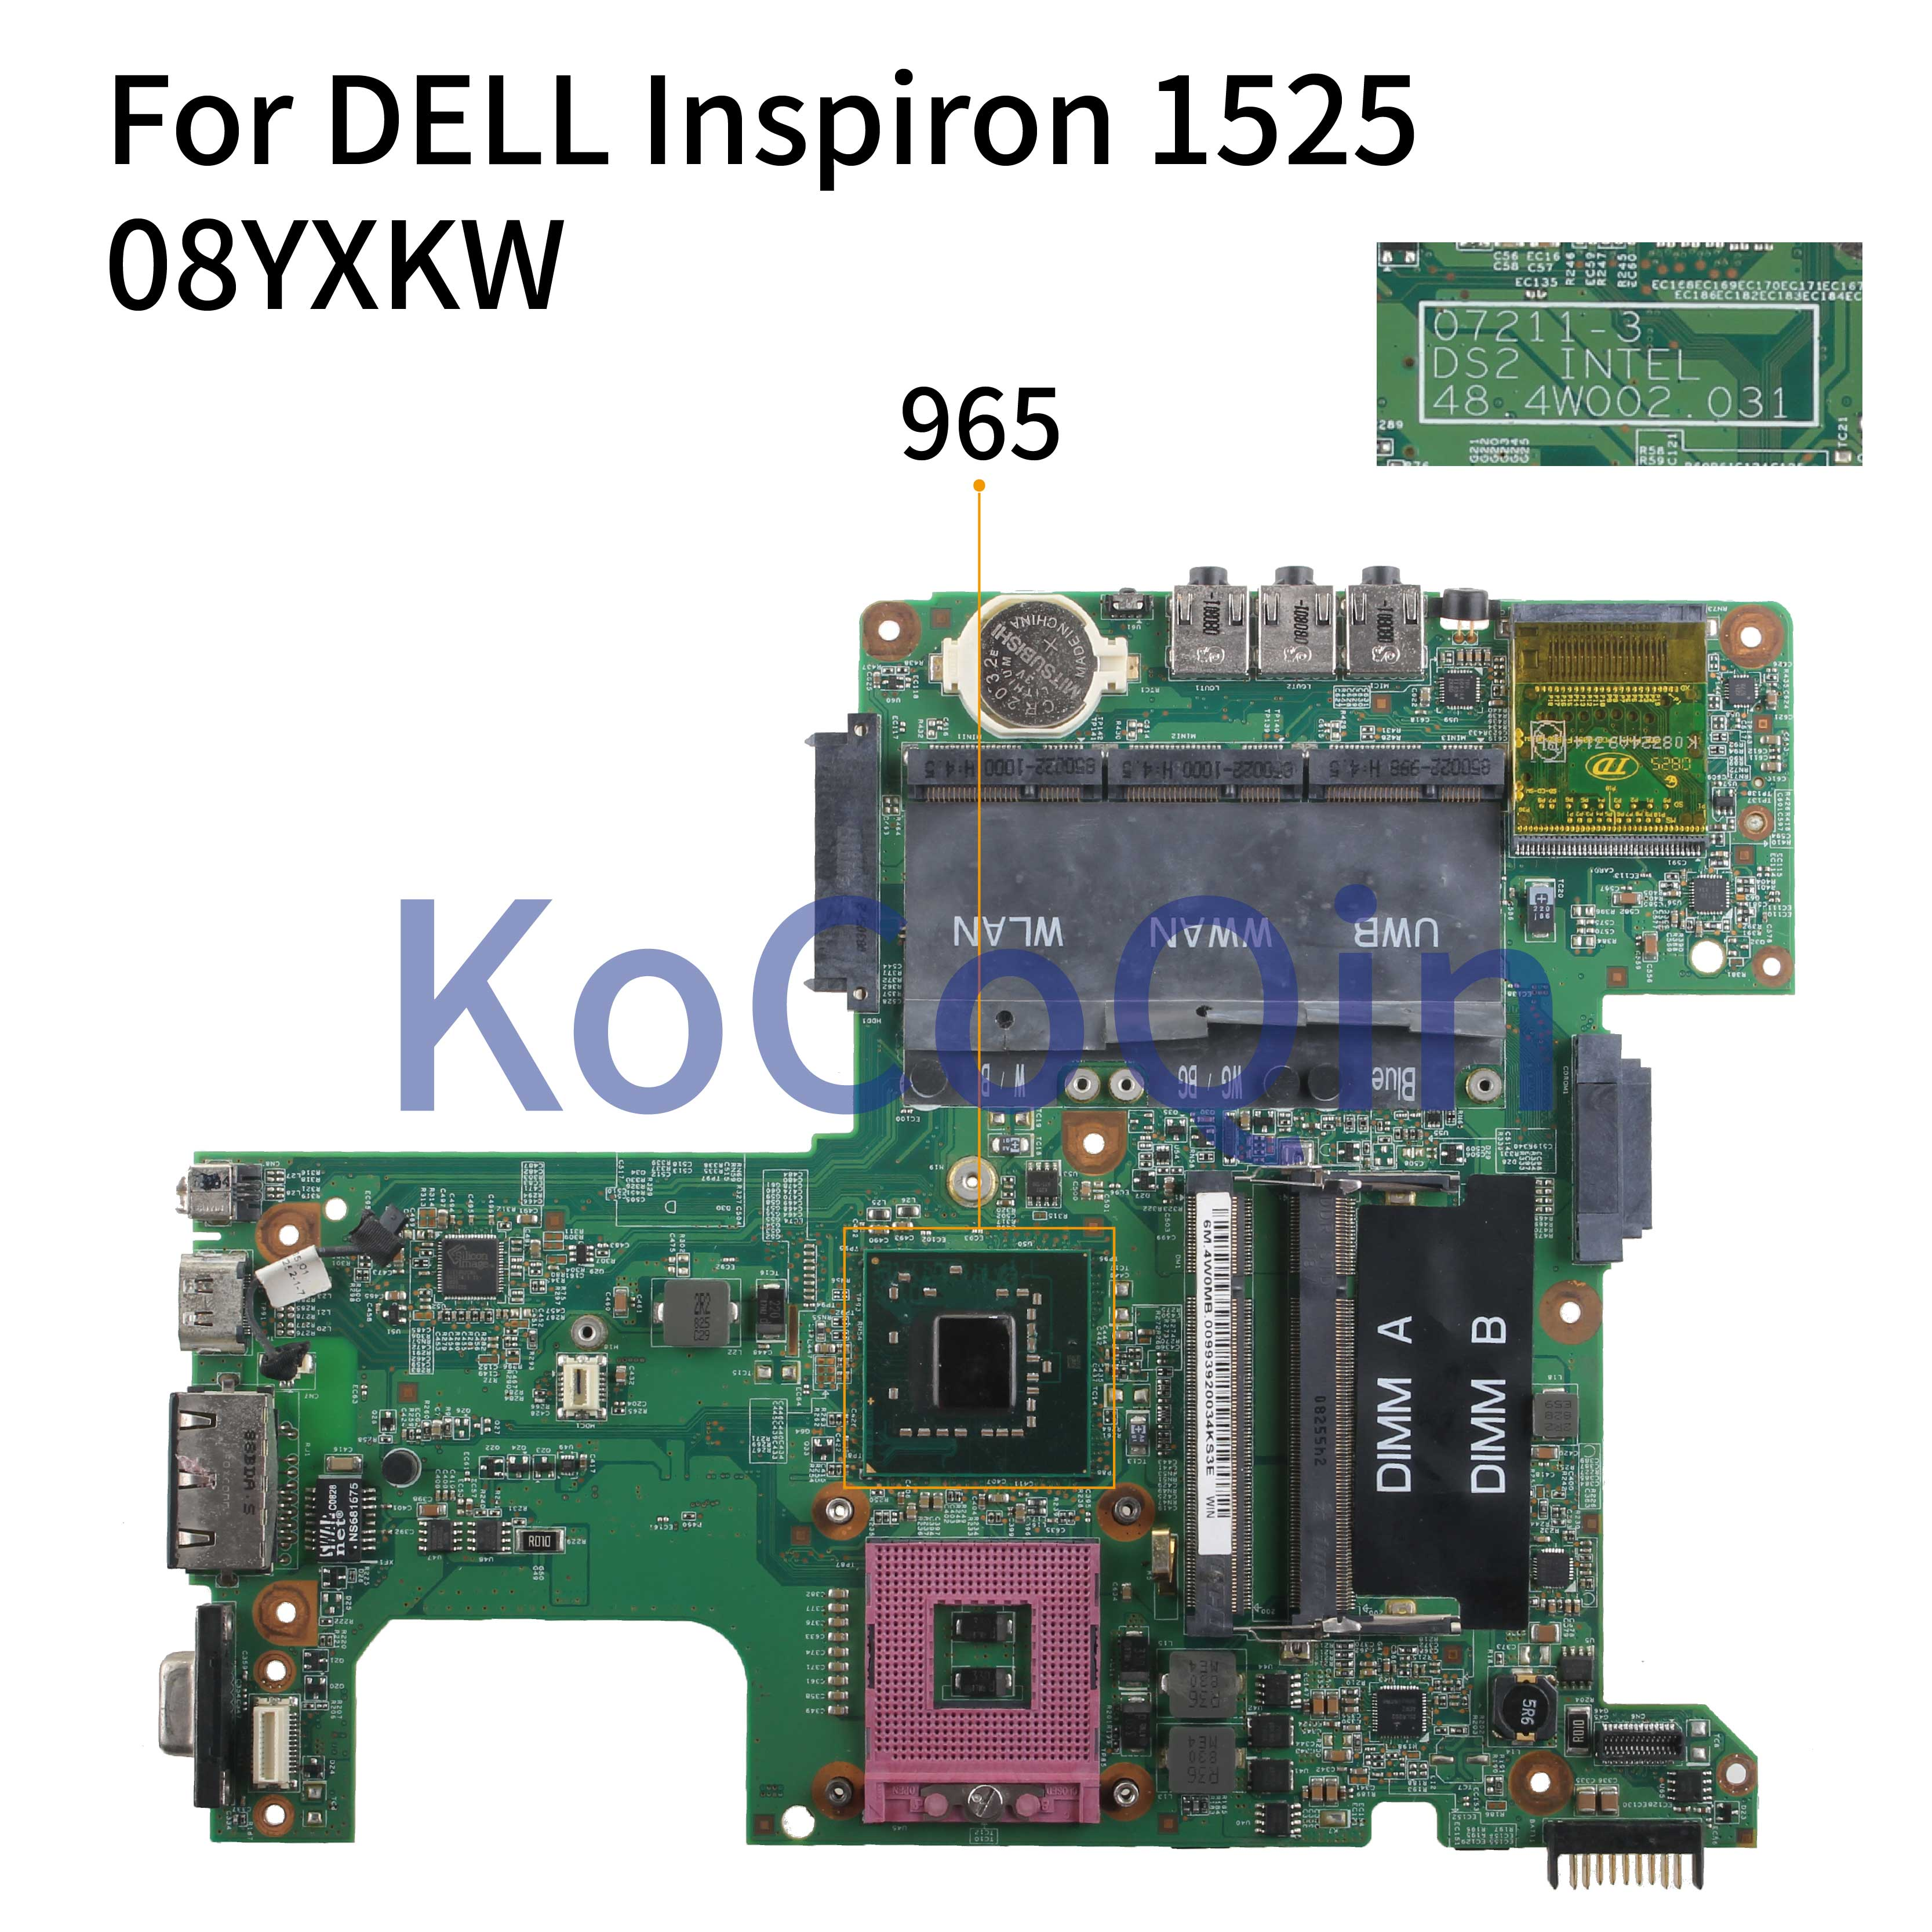 KoCoQin Laptop Motherboard For DELL Inspiron 1525 Mainboard 07211-3 48.4W002.031 CN-08YXKW 08YXKW 965